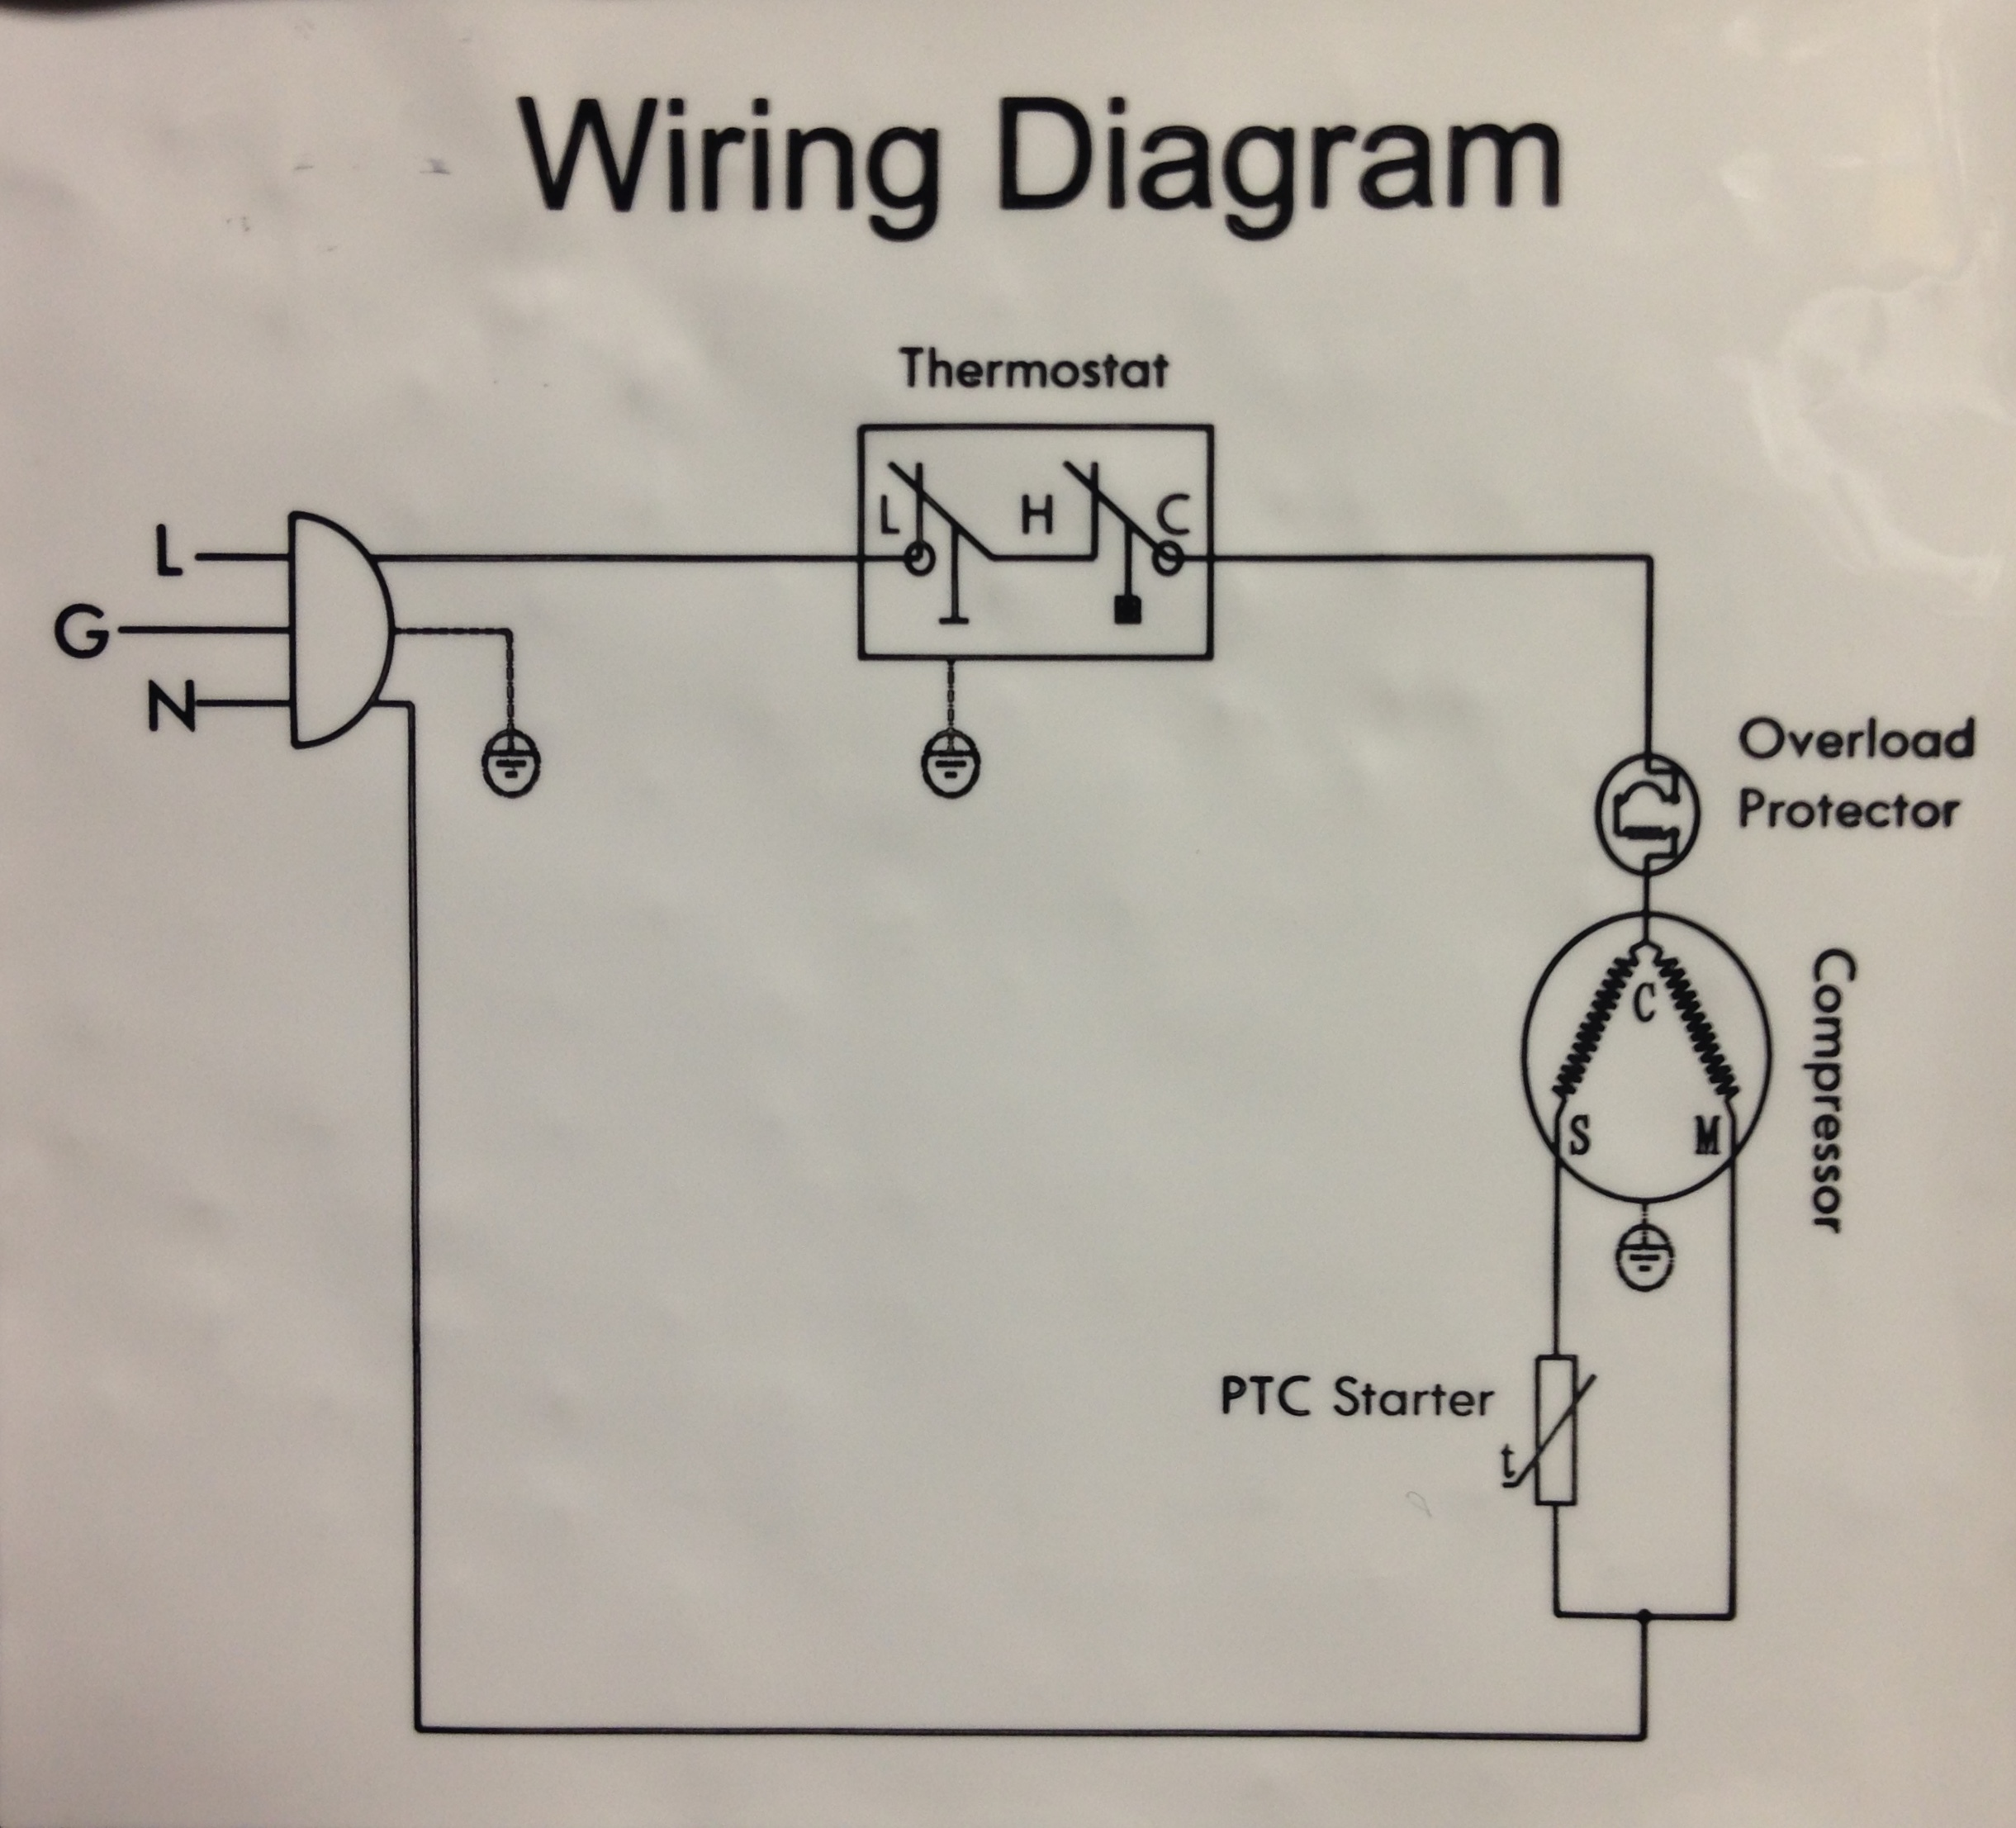 c5986337b4249150884d4e057ccb08b32fe4028e new build electronics newb diagram help fridge build brewpi hotpoint fridge thermostat wiring diagram at edmiracle.co